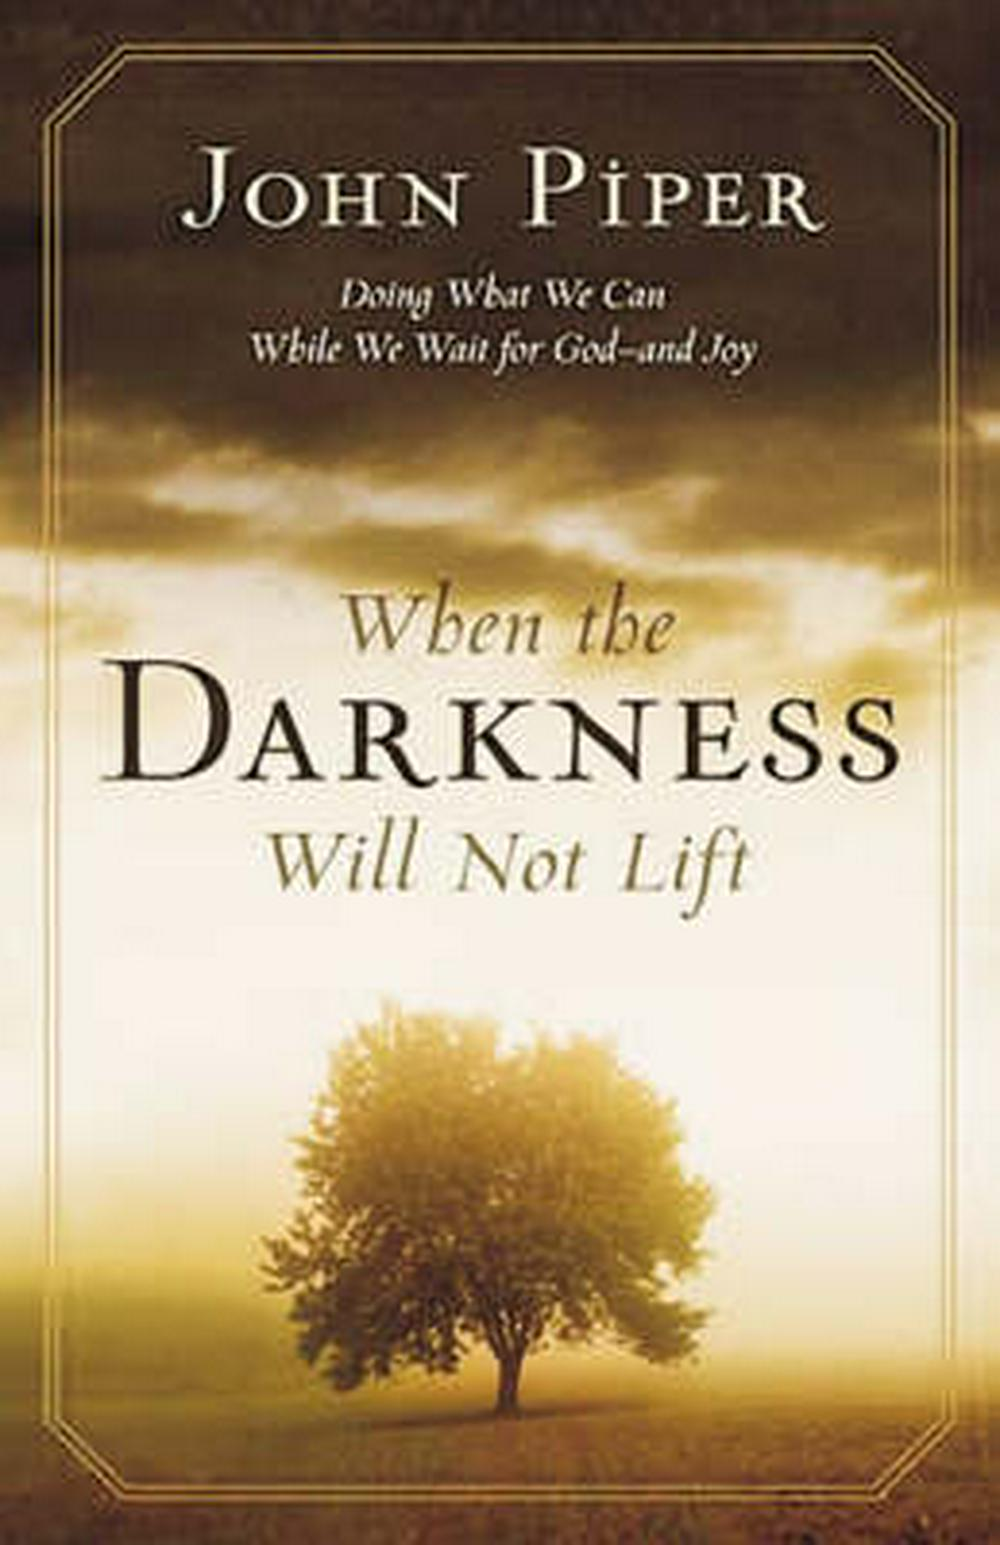 When the Darkness Will Not Lift by John Piper, ISBN: 9781844741847